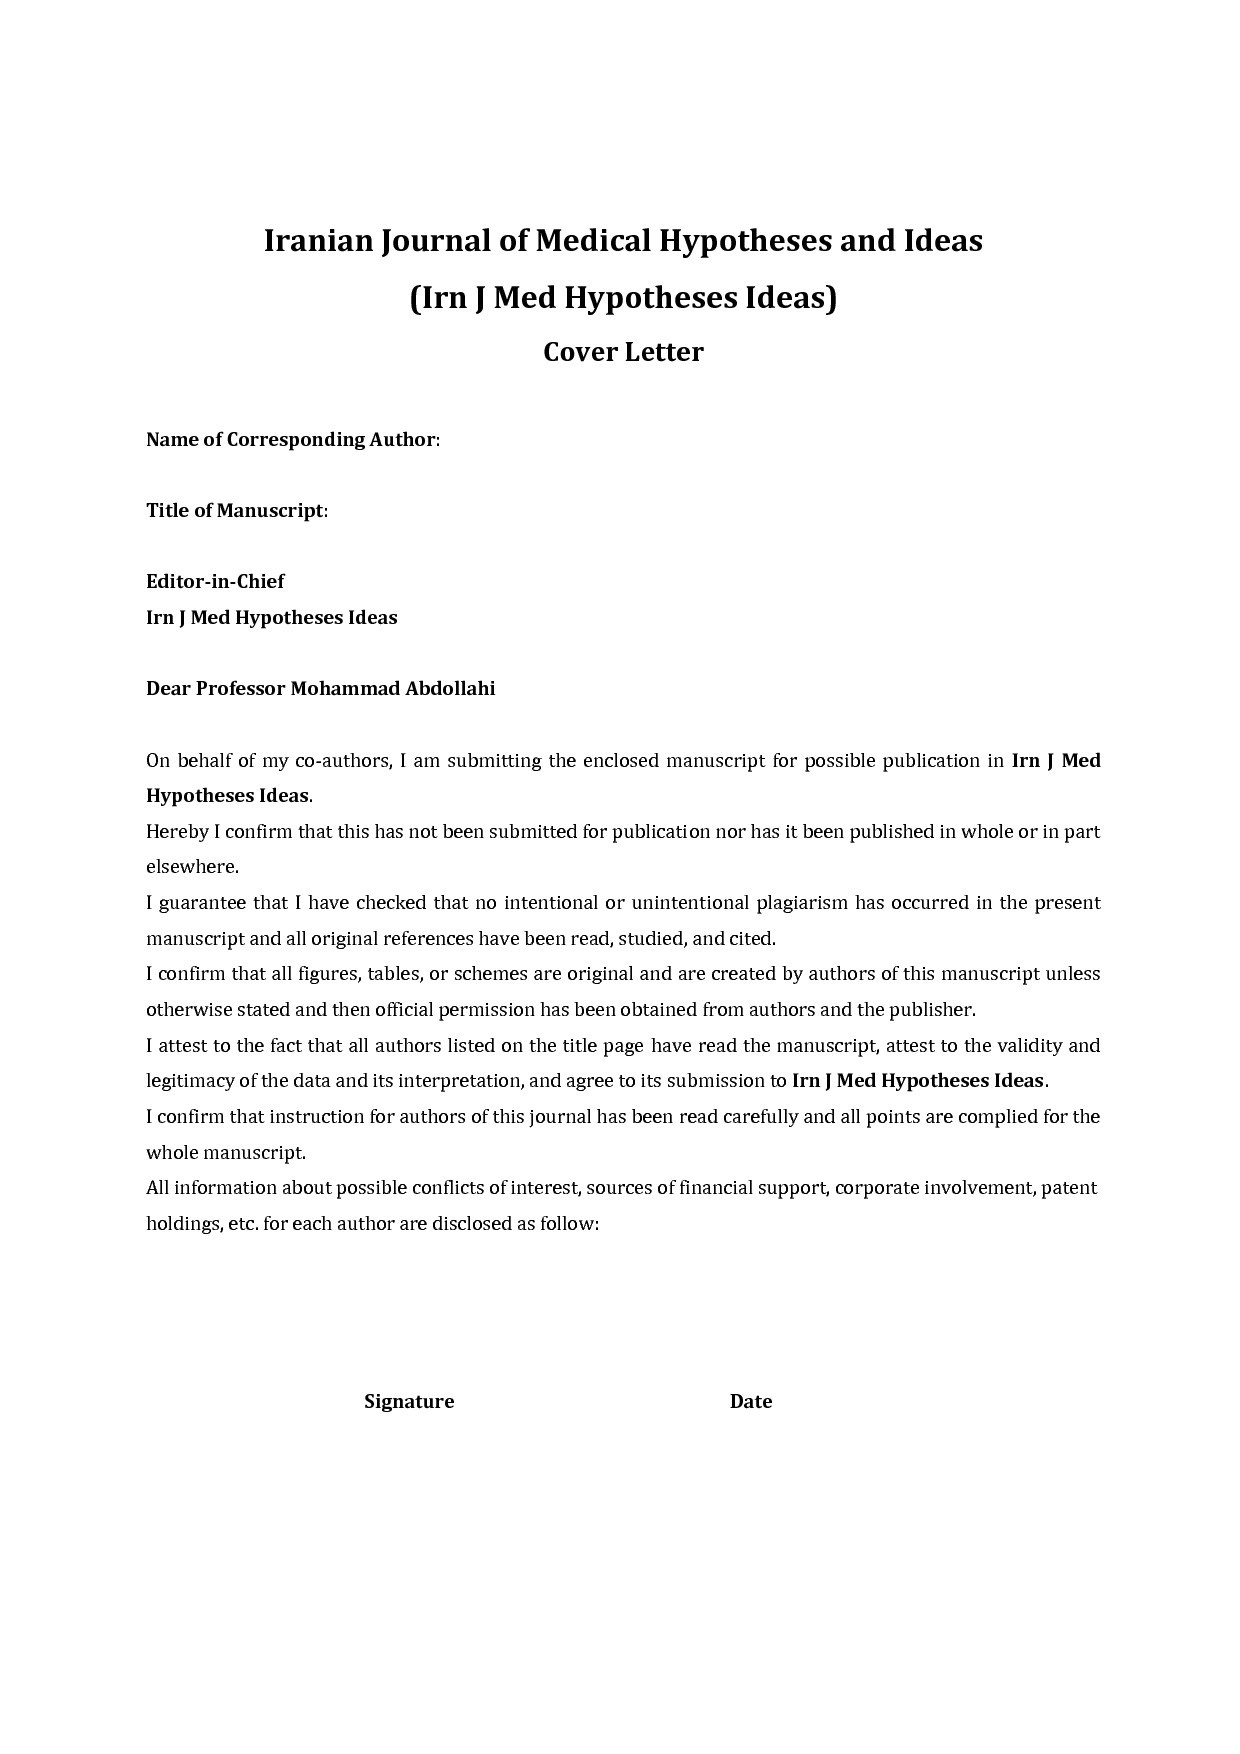 007 Cover Letter For Article Publication Journal Submission